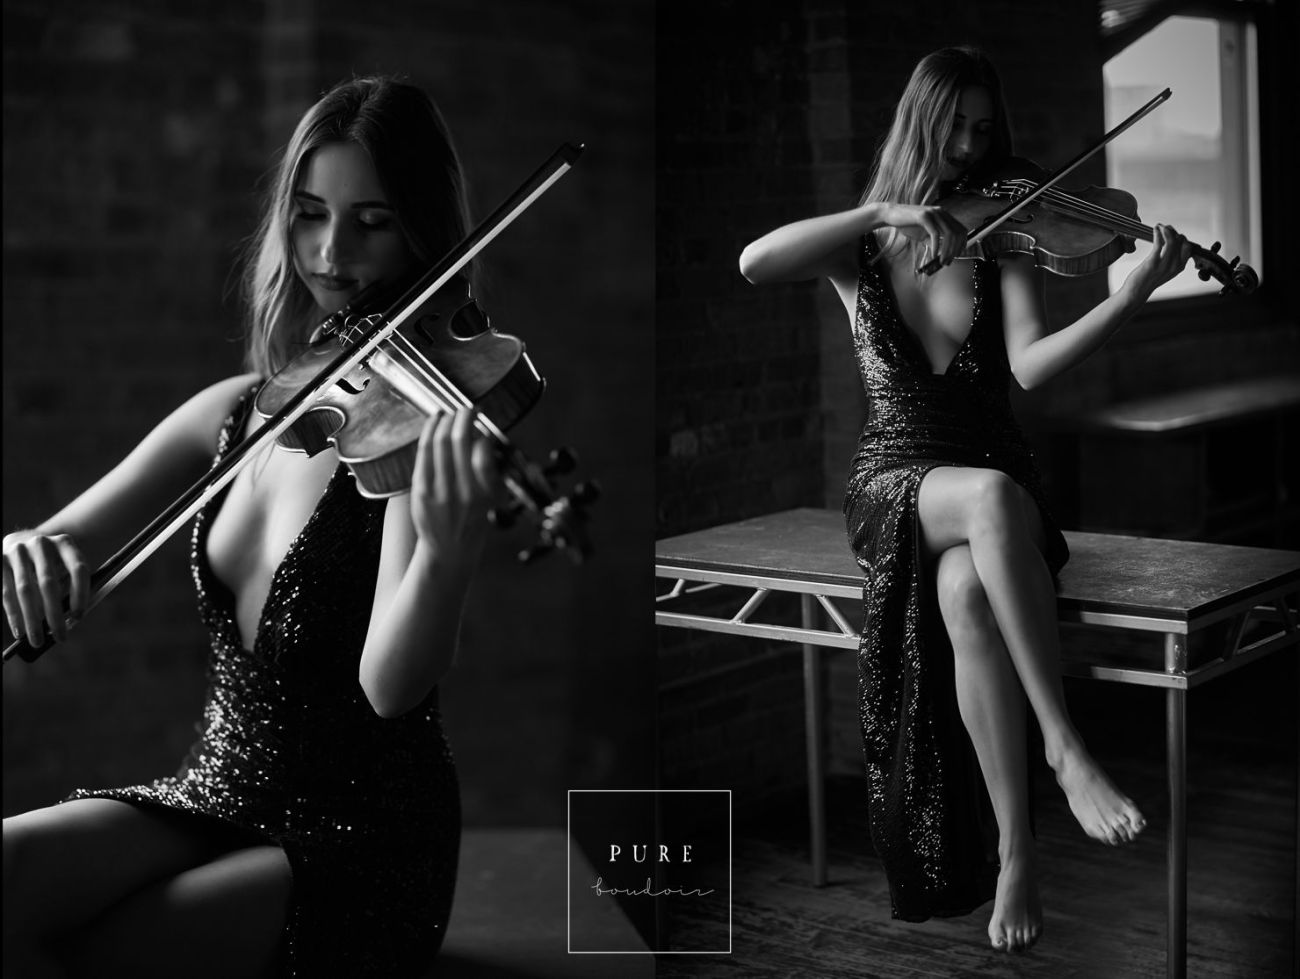 bnw sensual sexy boudoir photography - Female Photo Session with a Bit of Personal Touch